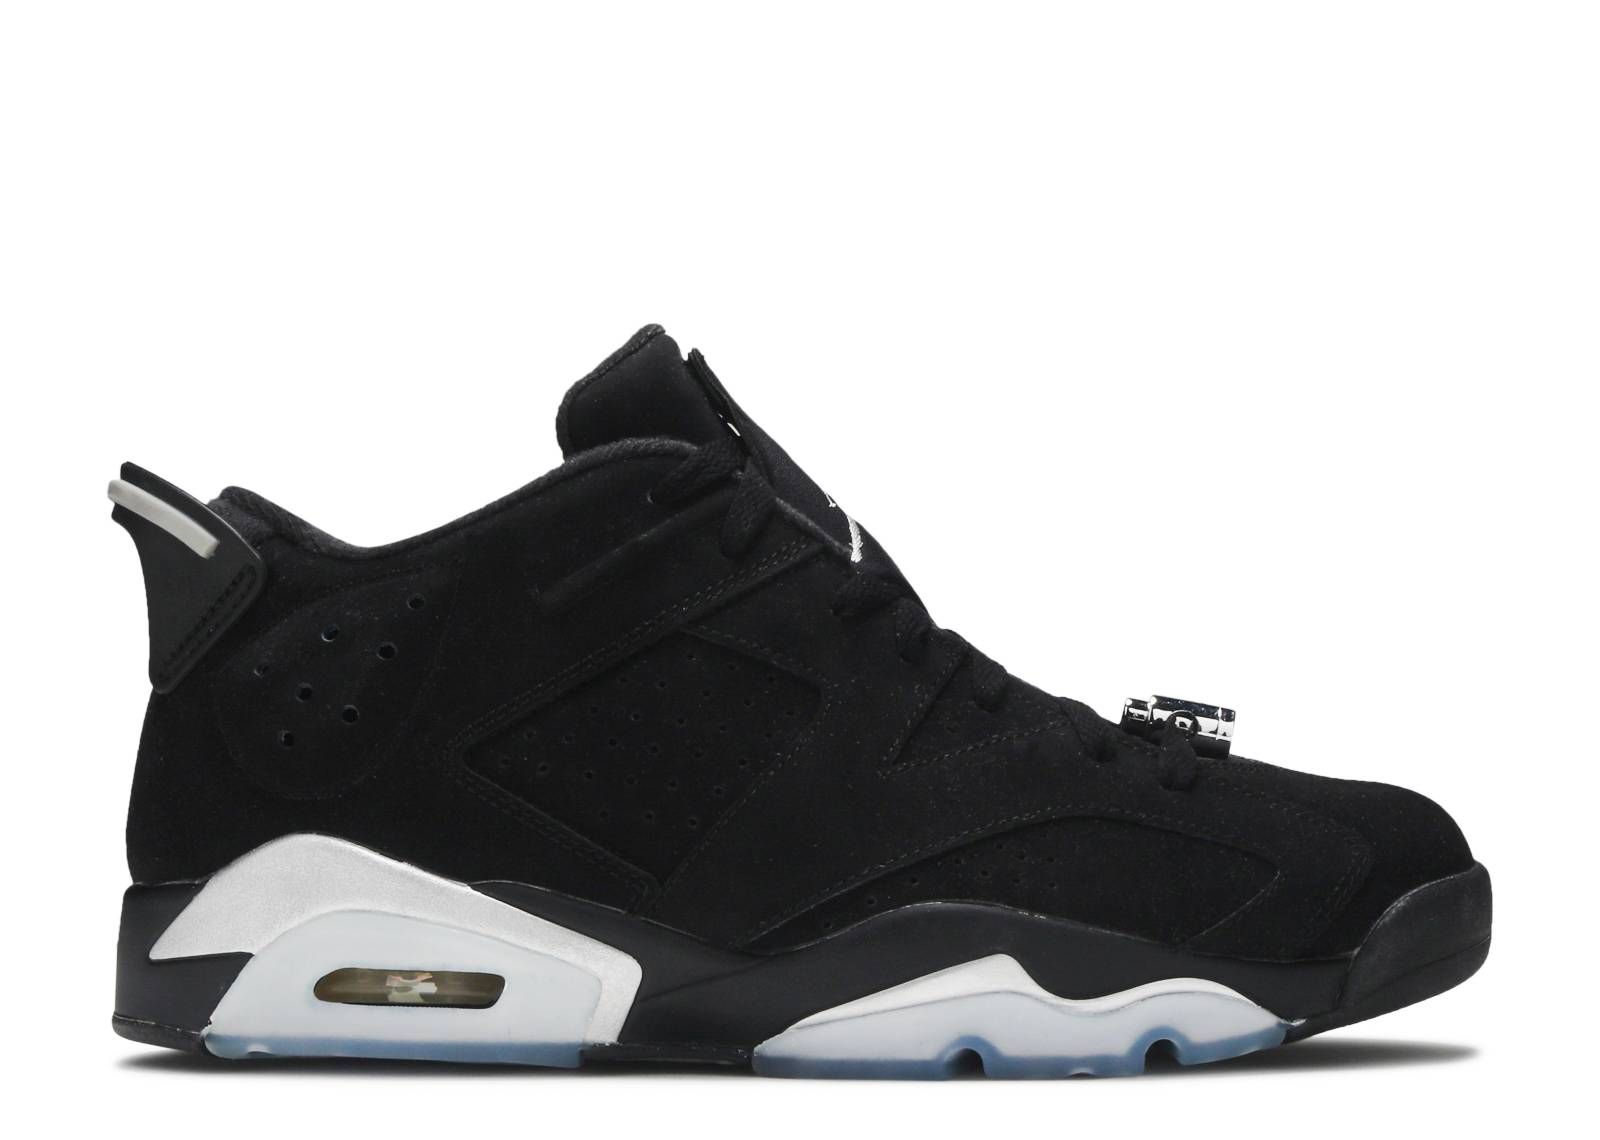 7cecafffbfd Air Jordan 6 Retro Low